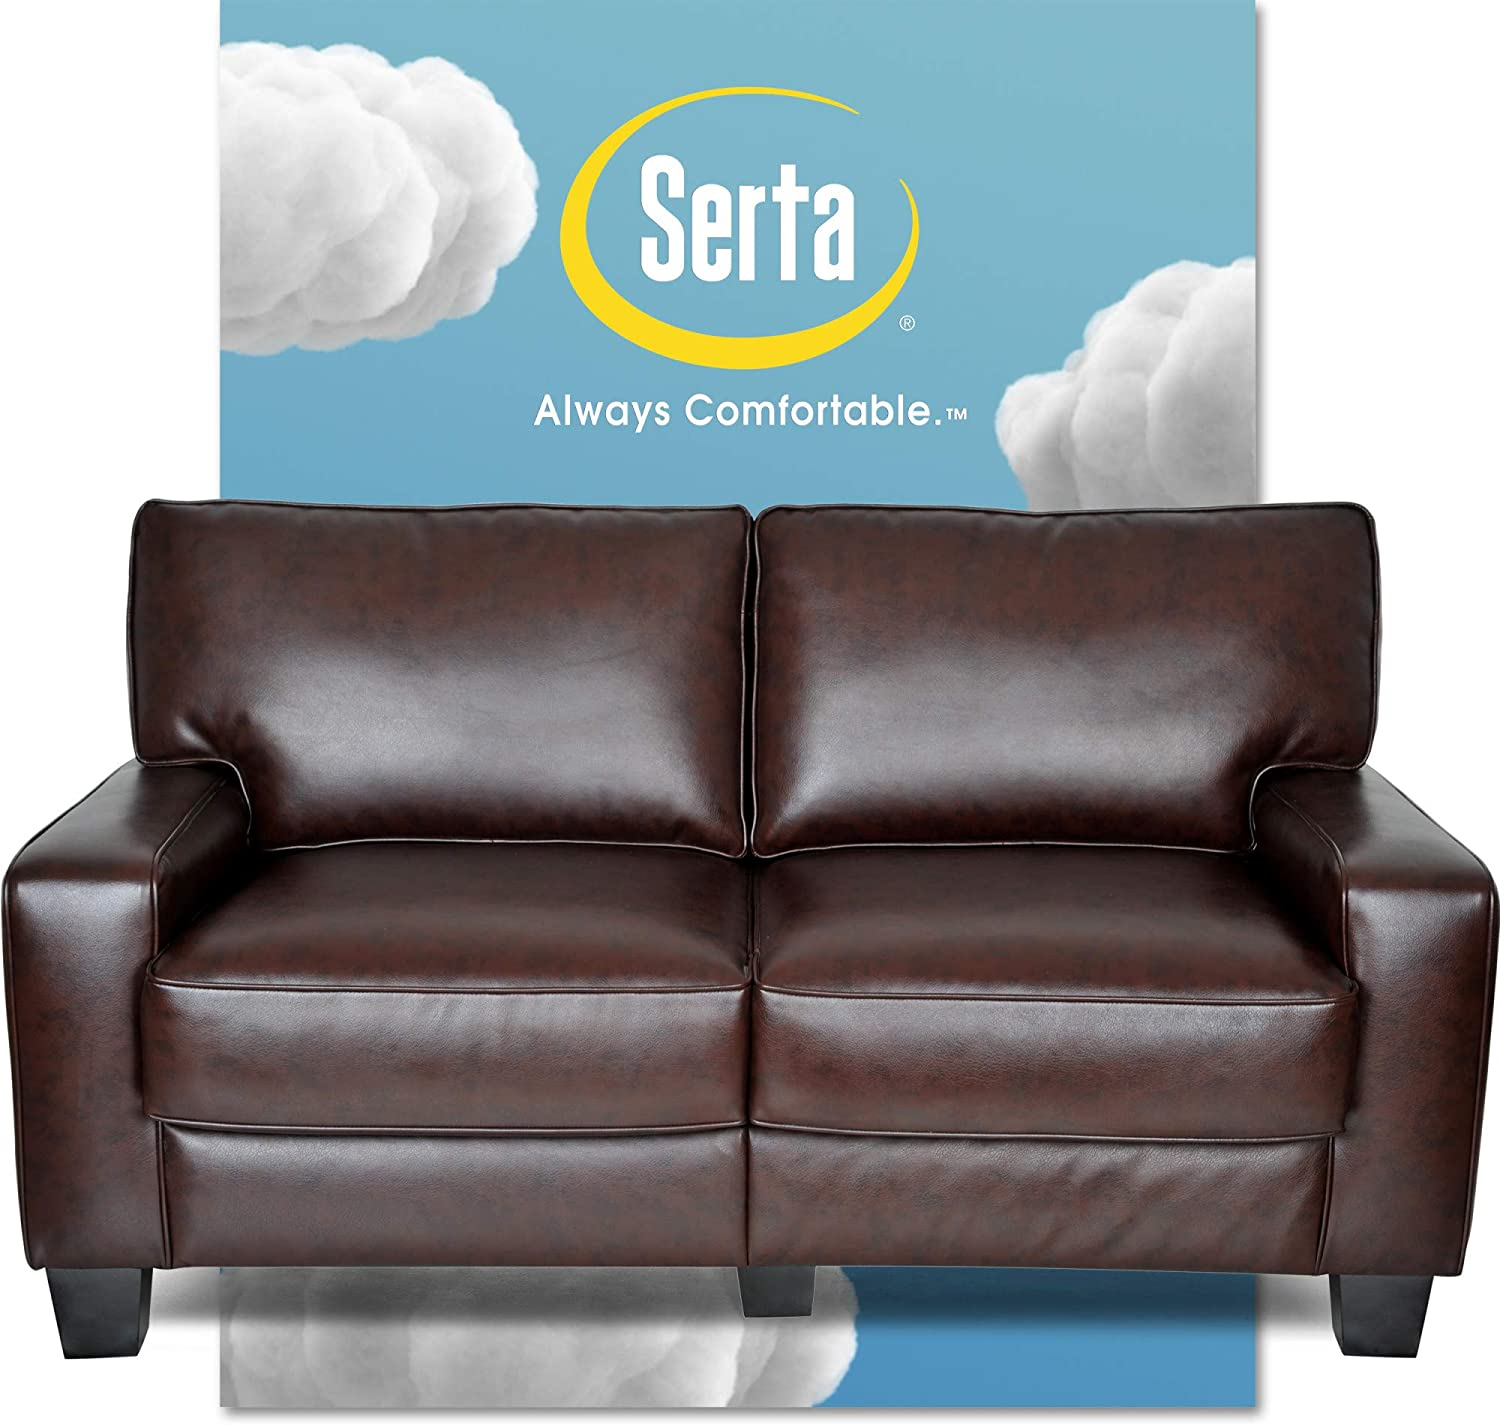 "Serta Palisades Upholstered Sofas for Living Room Modern Design Couch, Straight Arms, Soft Fabric Upholstery, Tool-Free Assembly, 61"" Loveseat, Chestnut Brown"